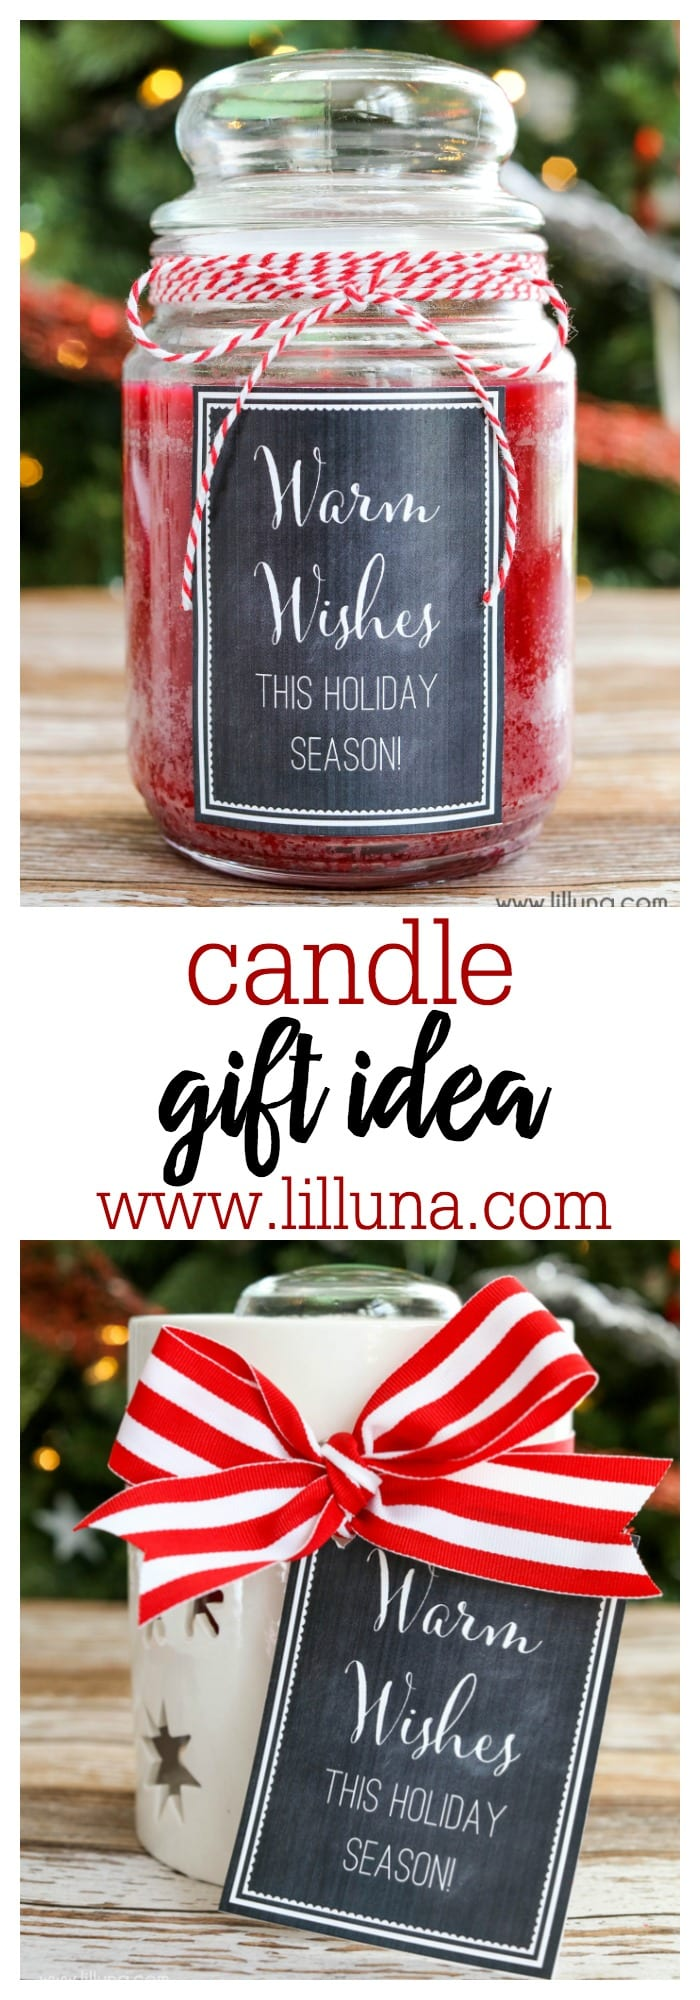 CUTE candle gift idea with free tags. Simple and inexpensive too!!